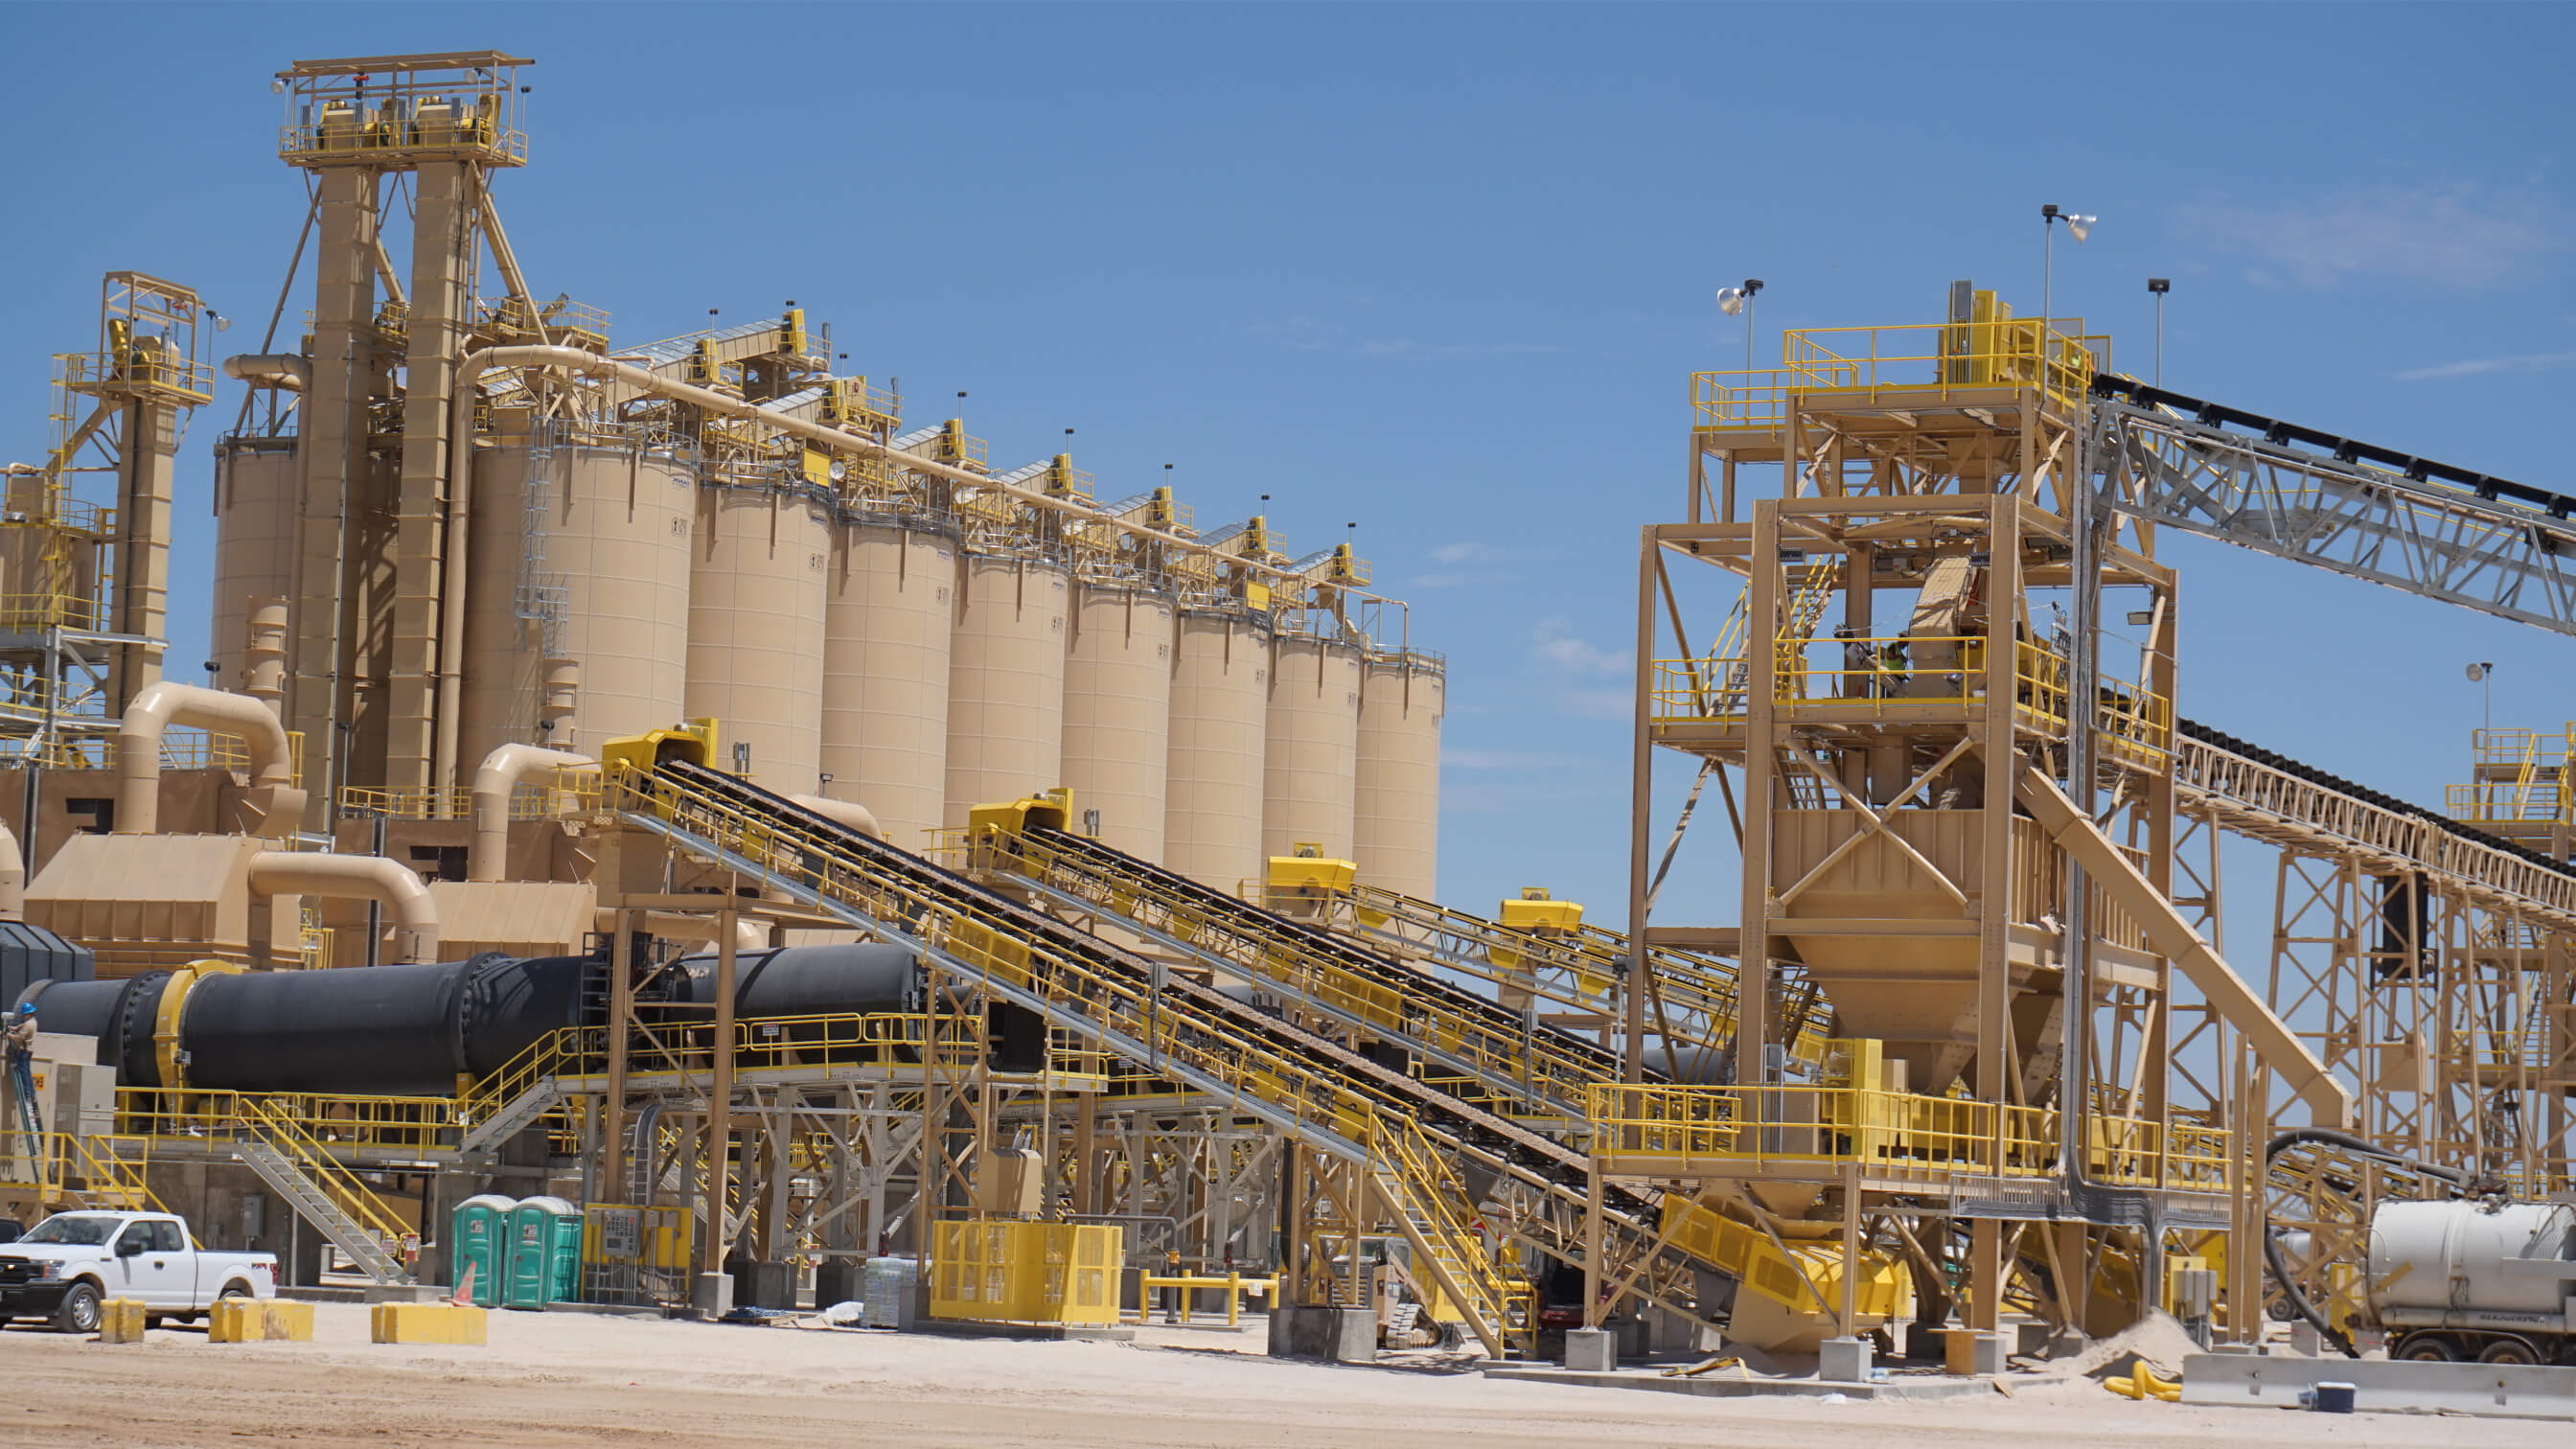 Providing power for remote sand mines